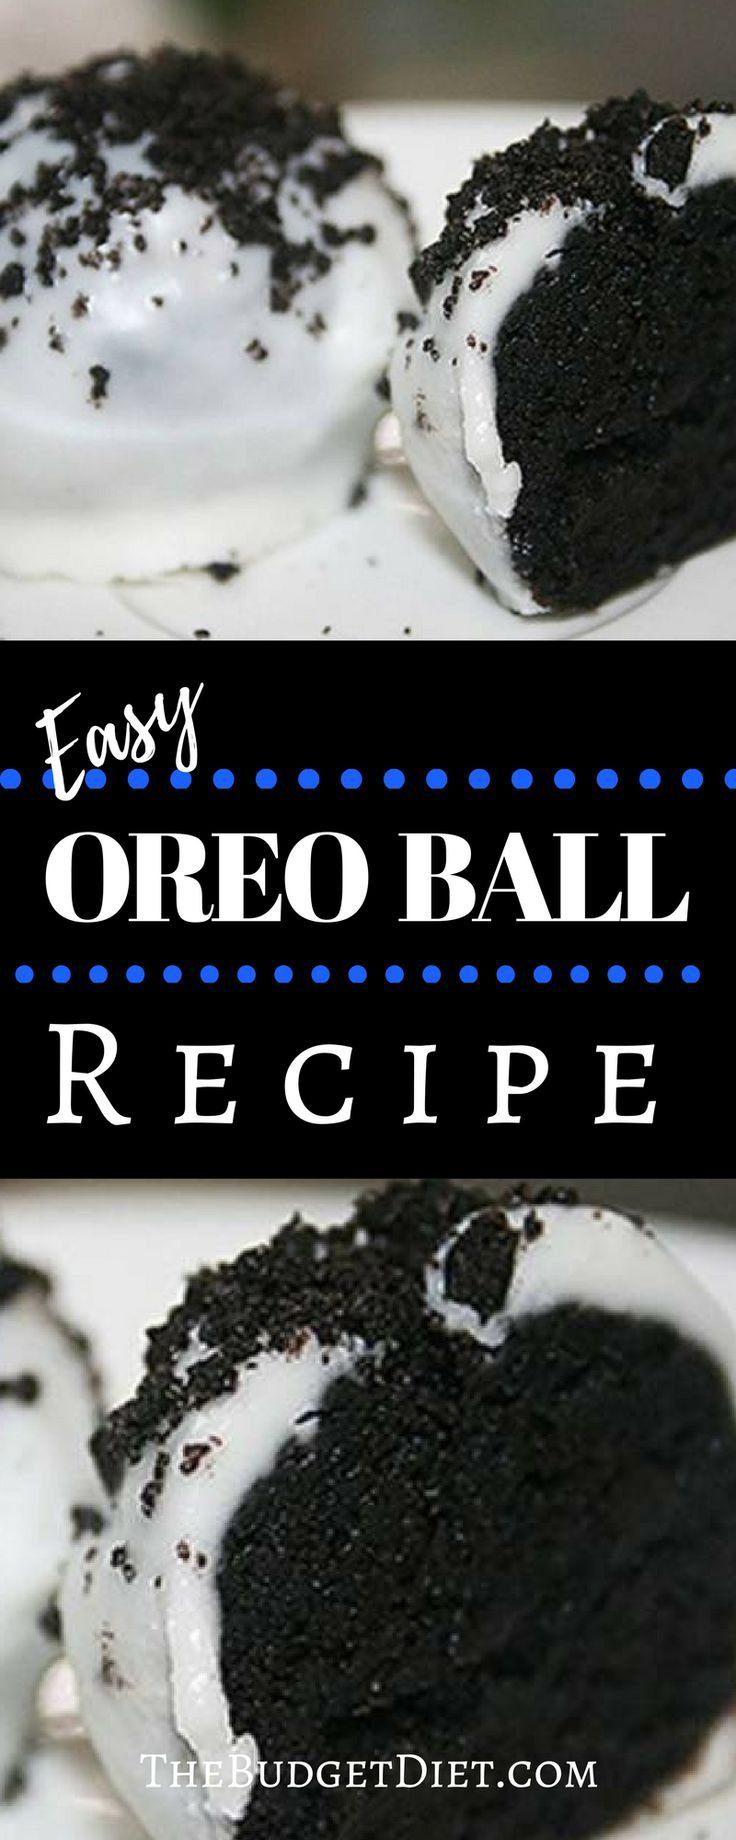 Super Easy and Yummy Treats Your Family Will Love!